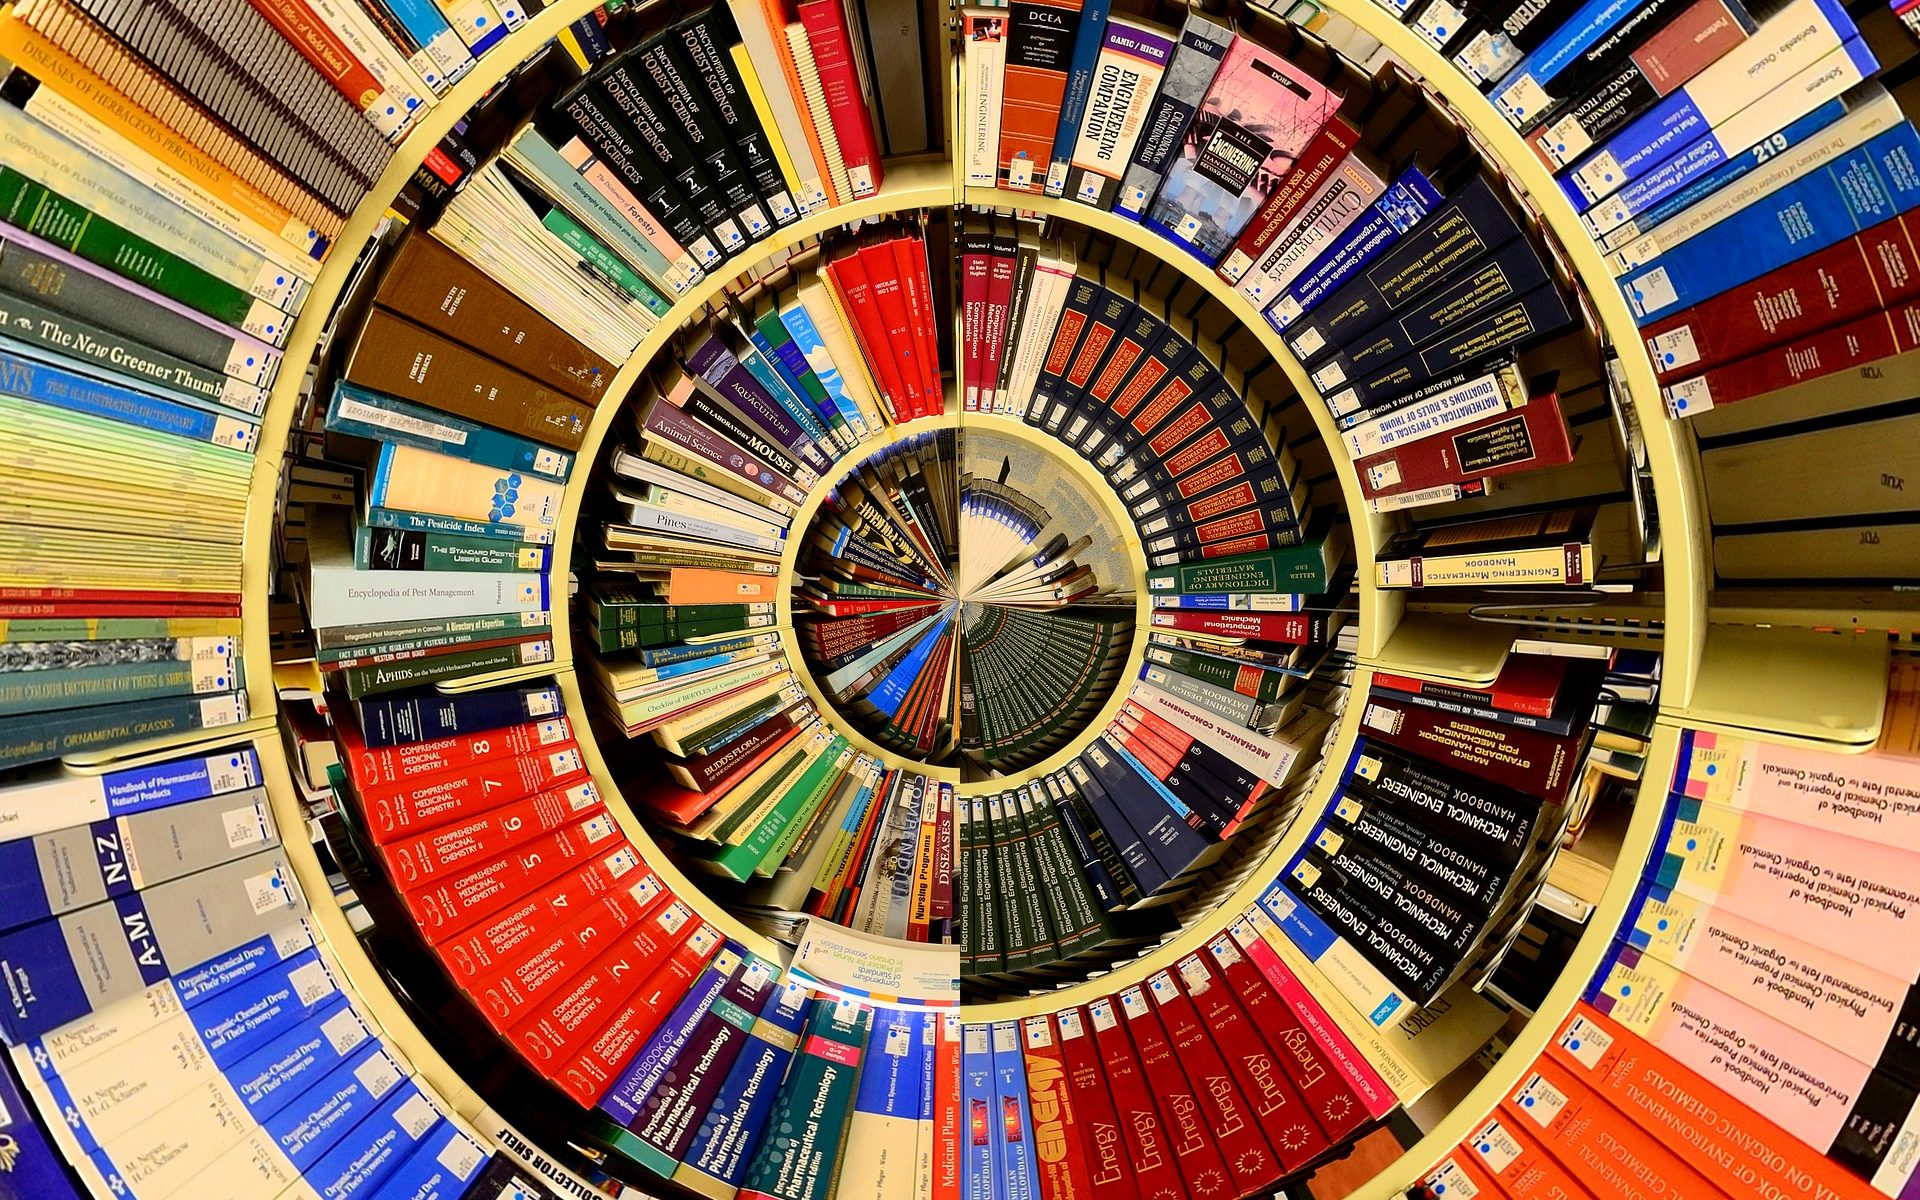 Books in Disc Arrangement